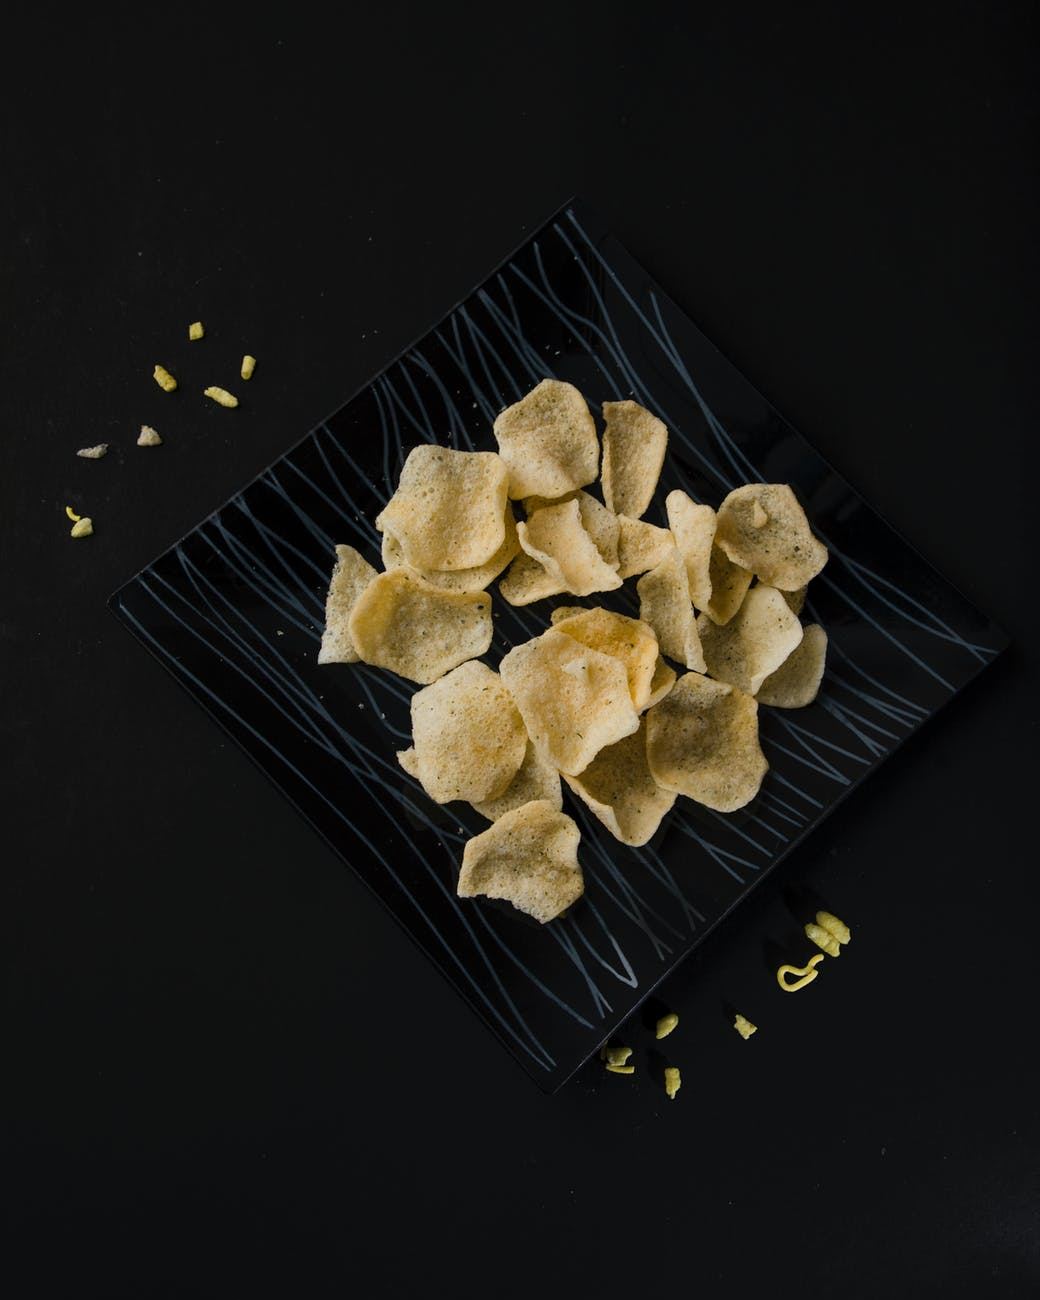 top view photo of chips